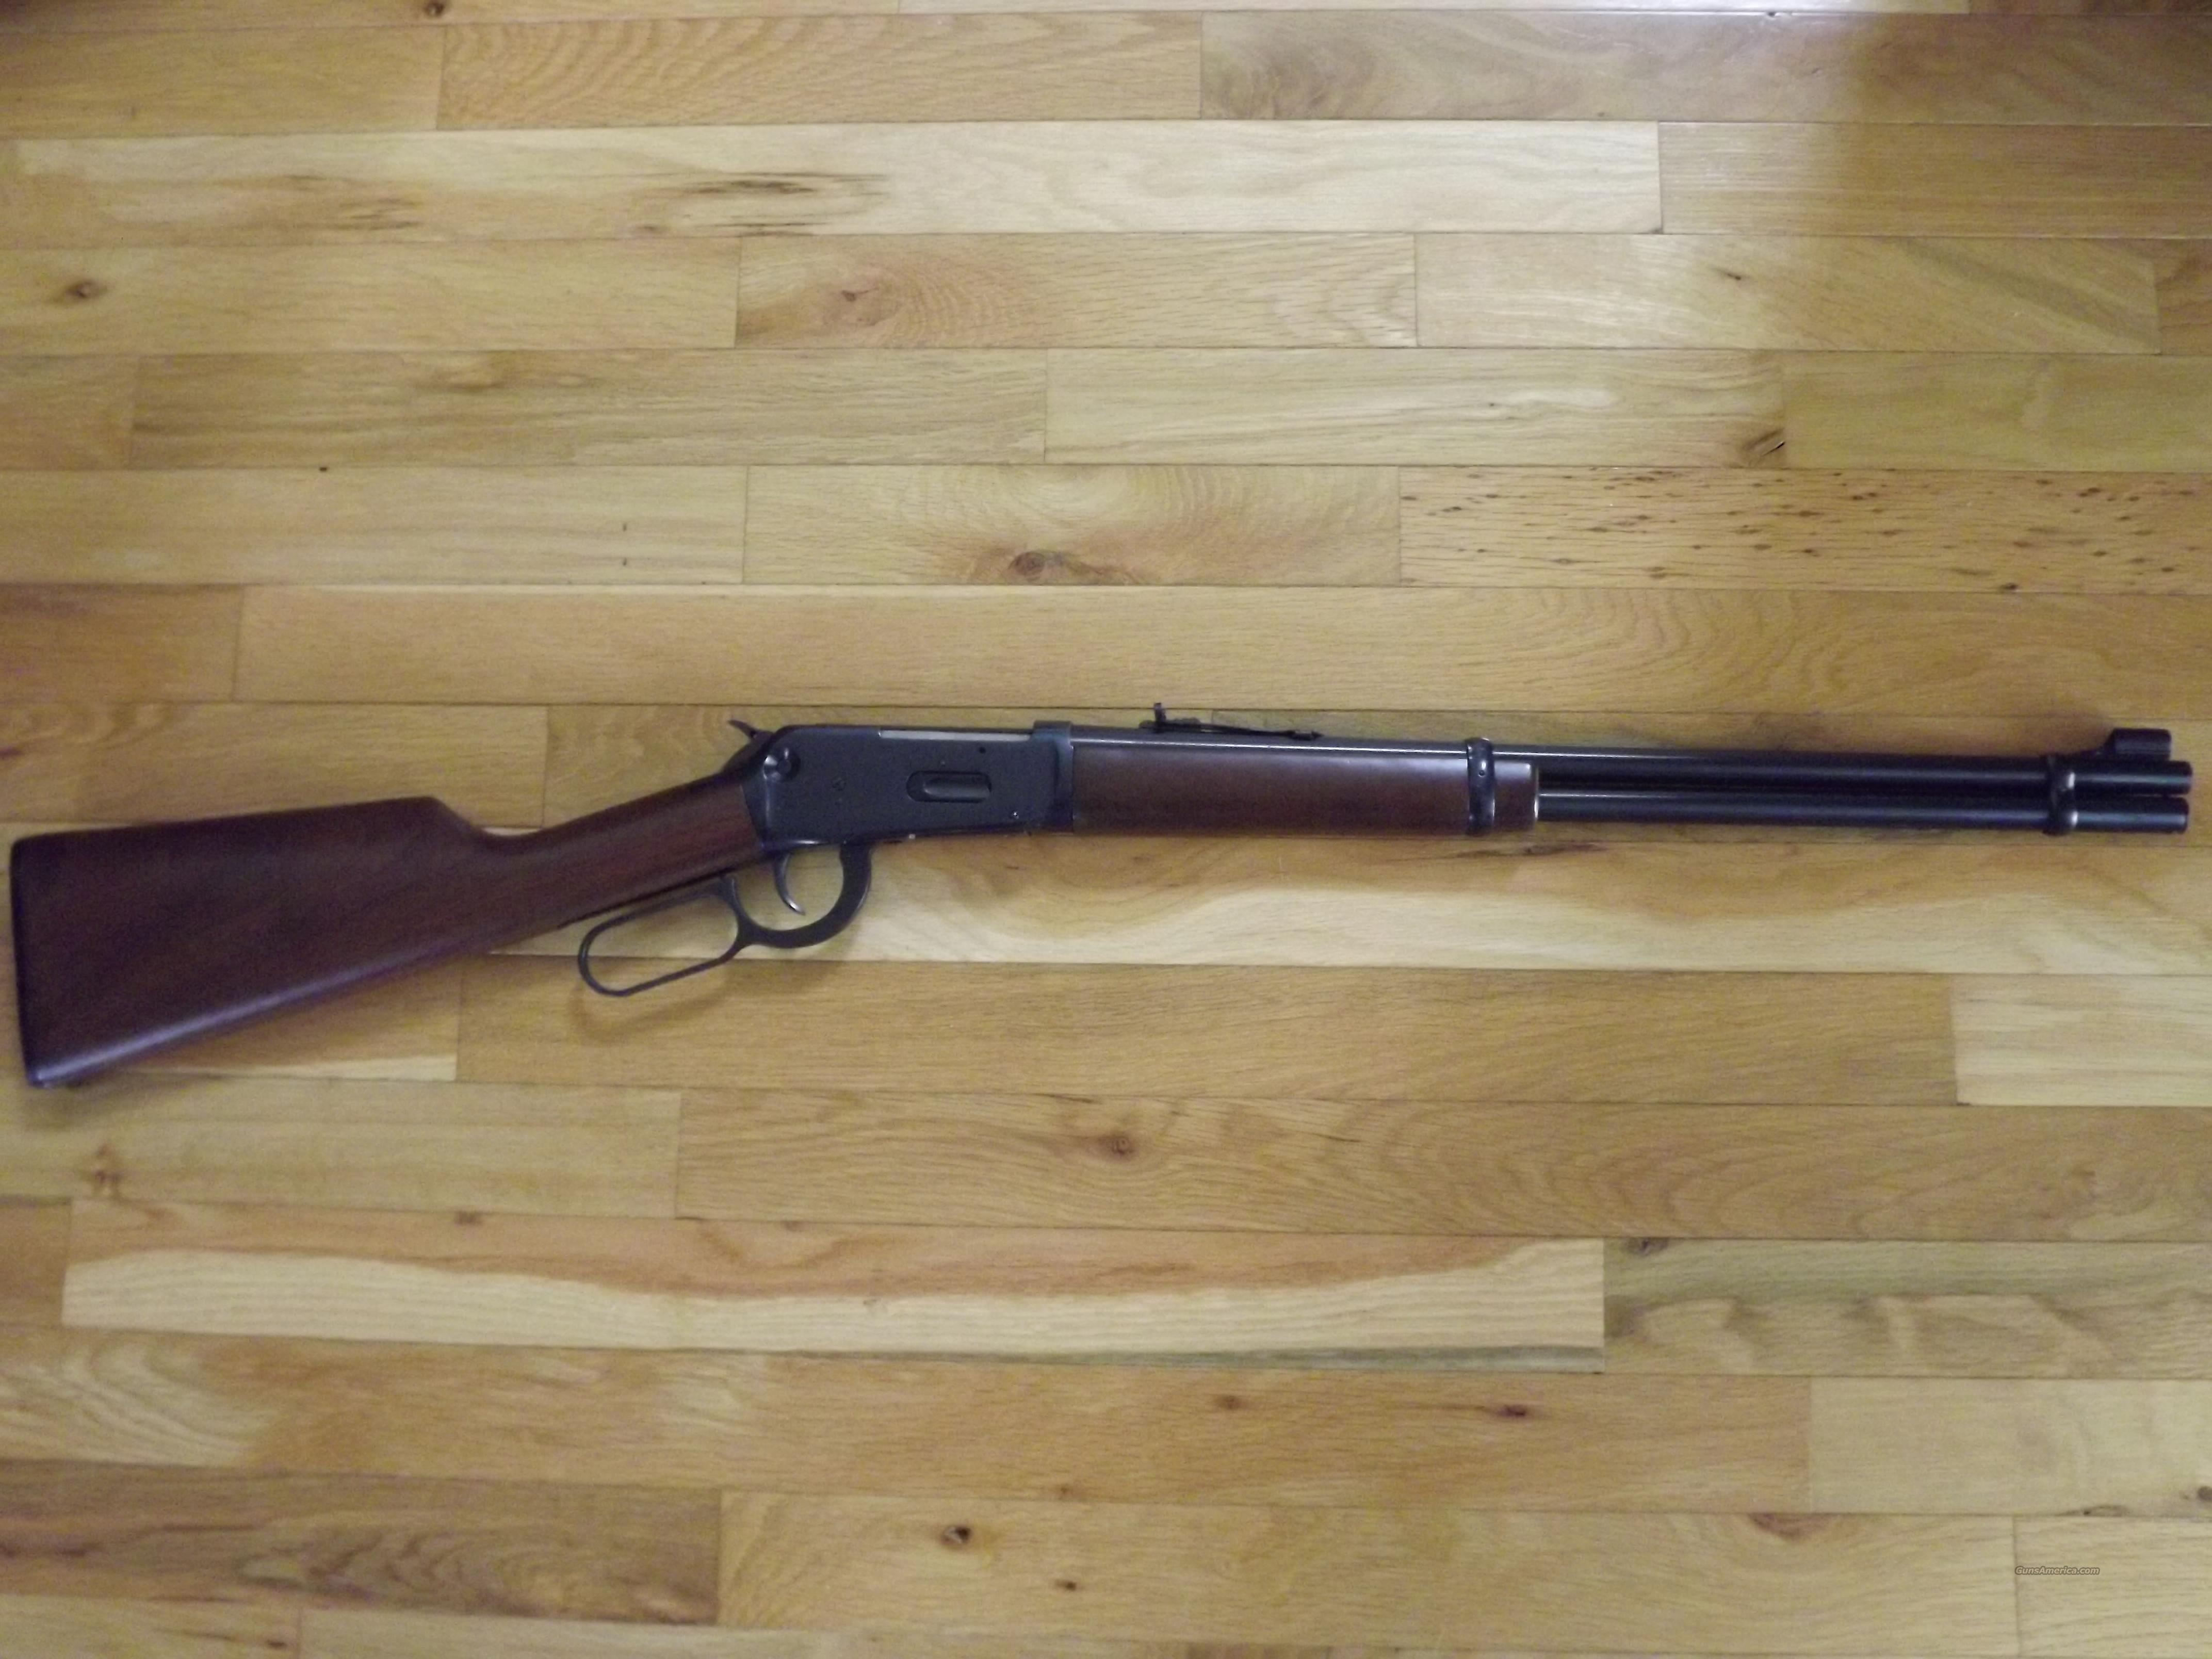 WINCHESTER 94 CROSSBOLT SAFETY (price lowered)  Guns > Rifles > Winchester Rifles - Modern Lever > Model 94 > Post-64